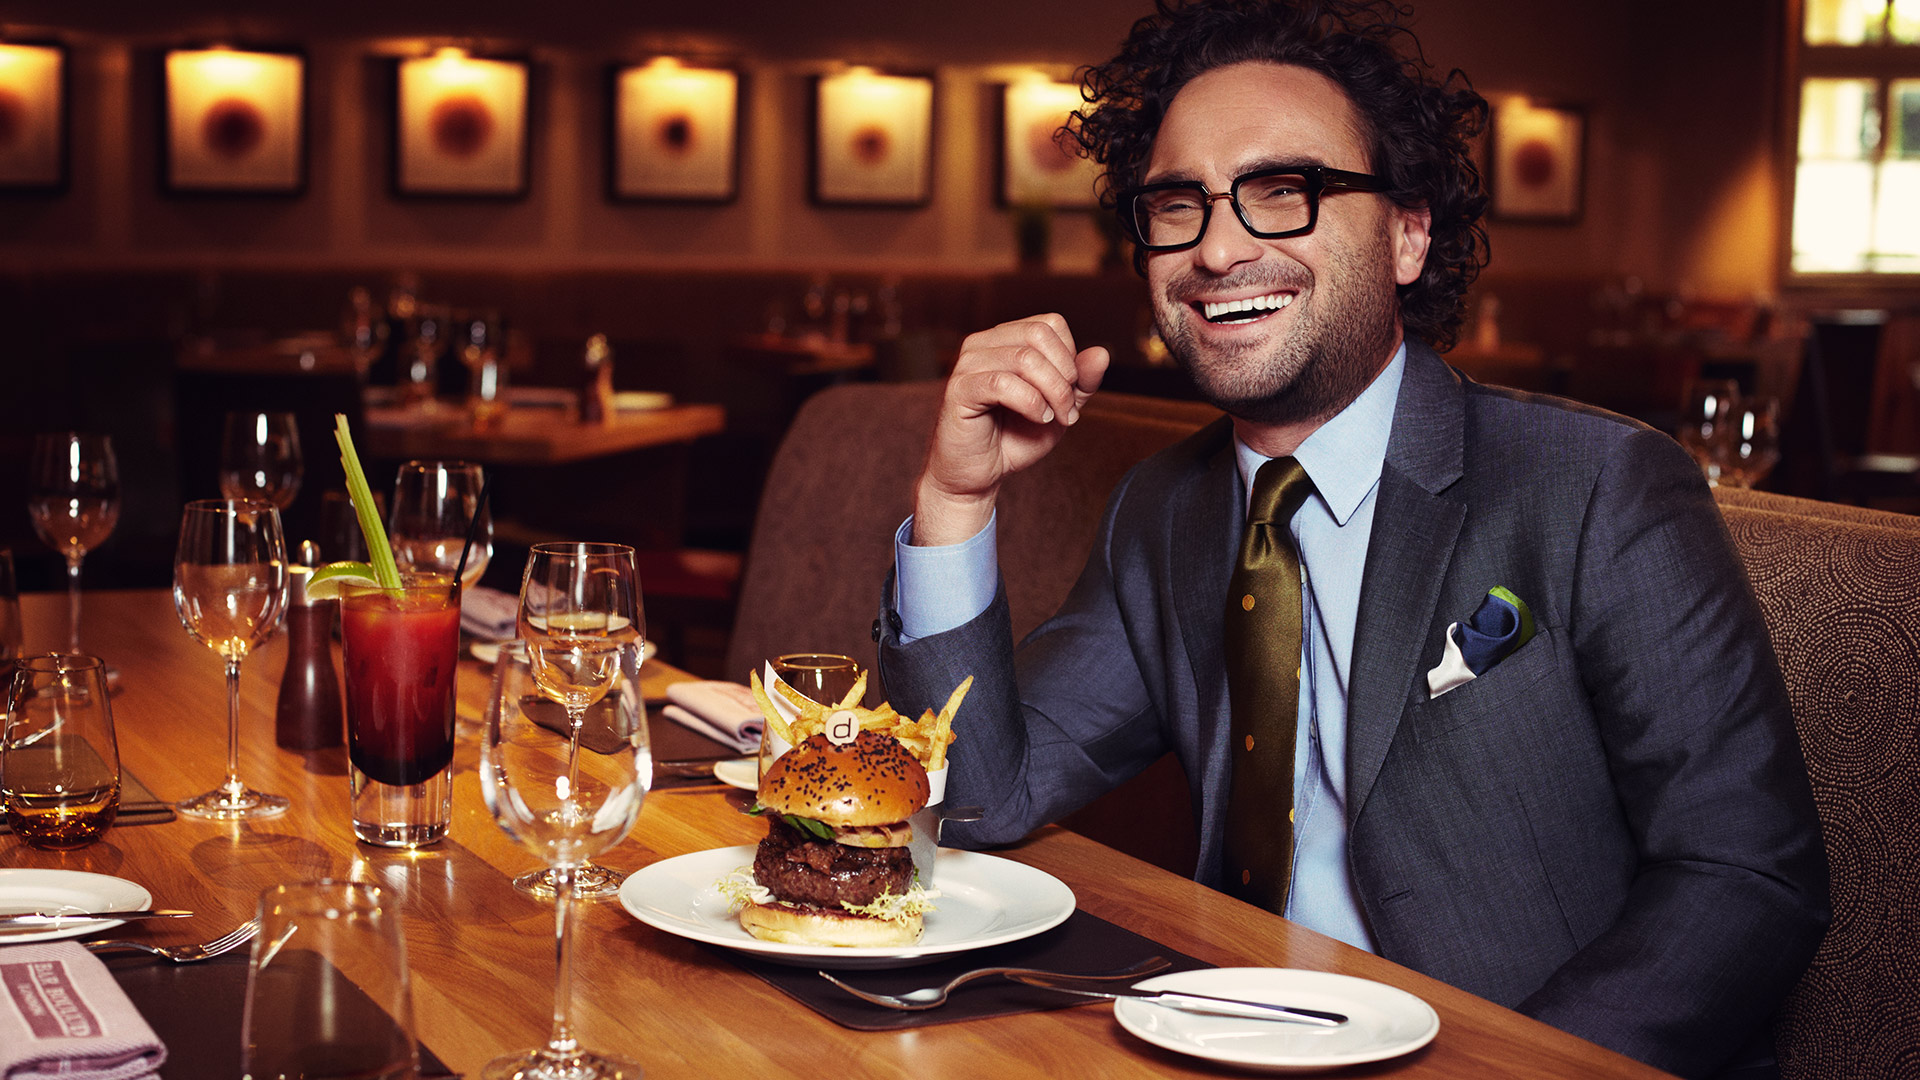 Burger bliss with Johnny Galecki